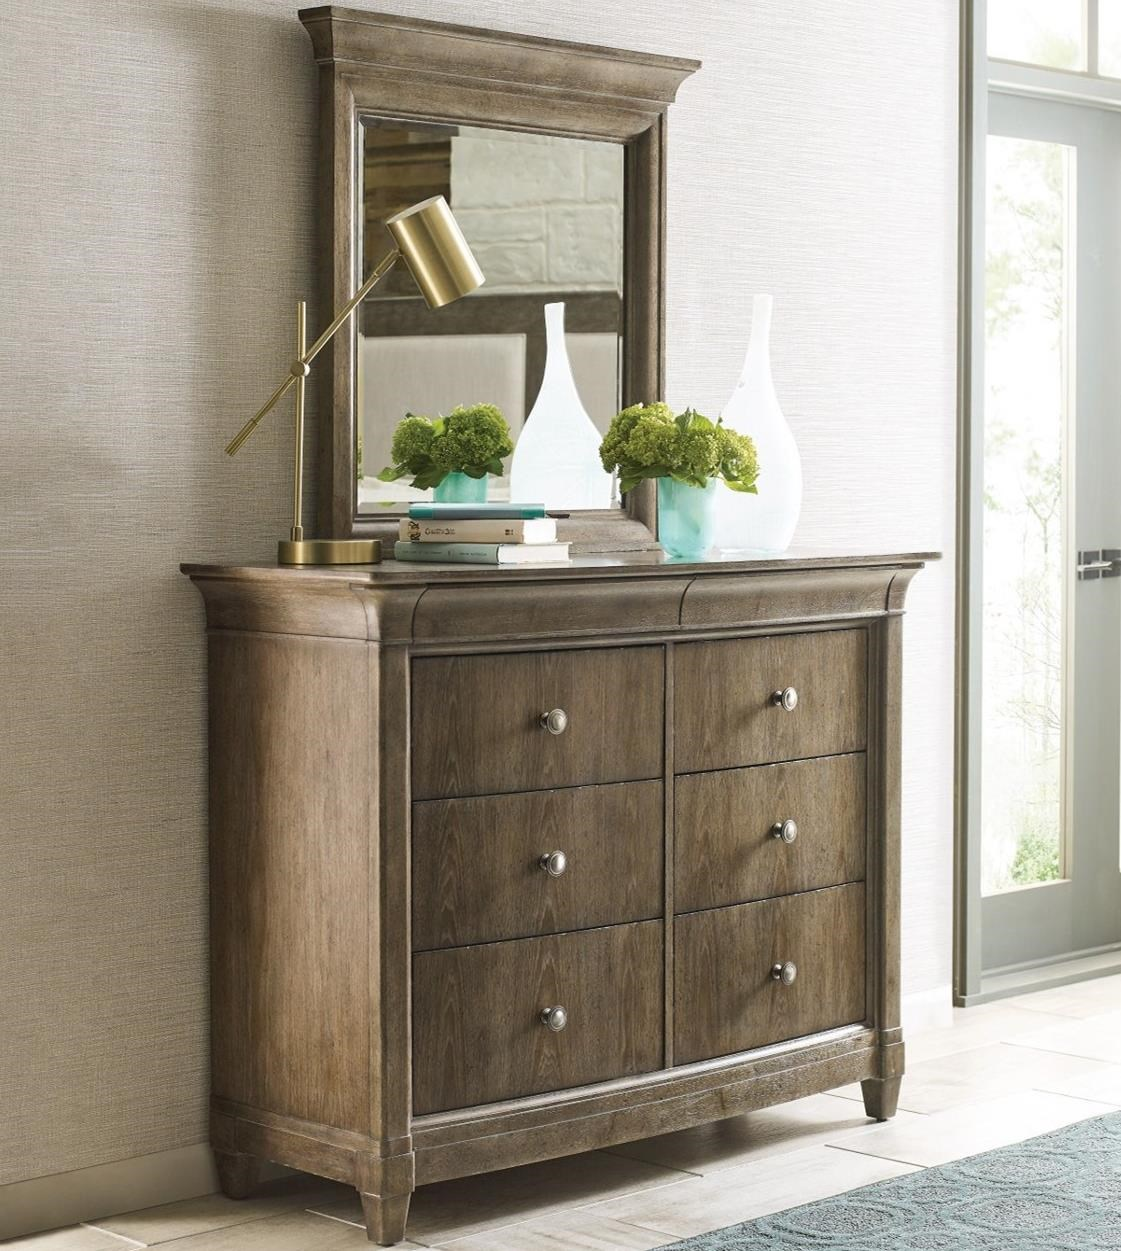 Anson Dresser + Mirror Set by American Drew at Value City Furniture